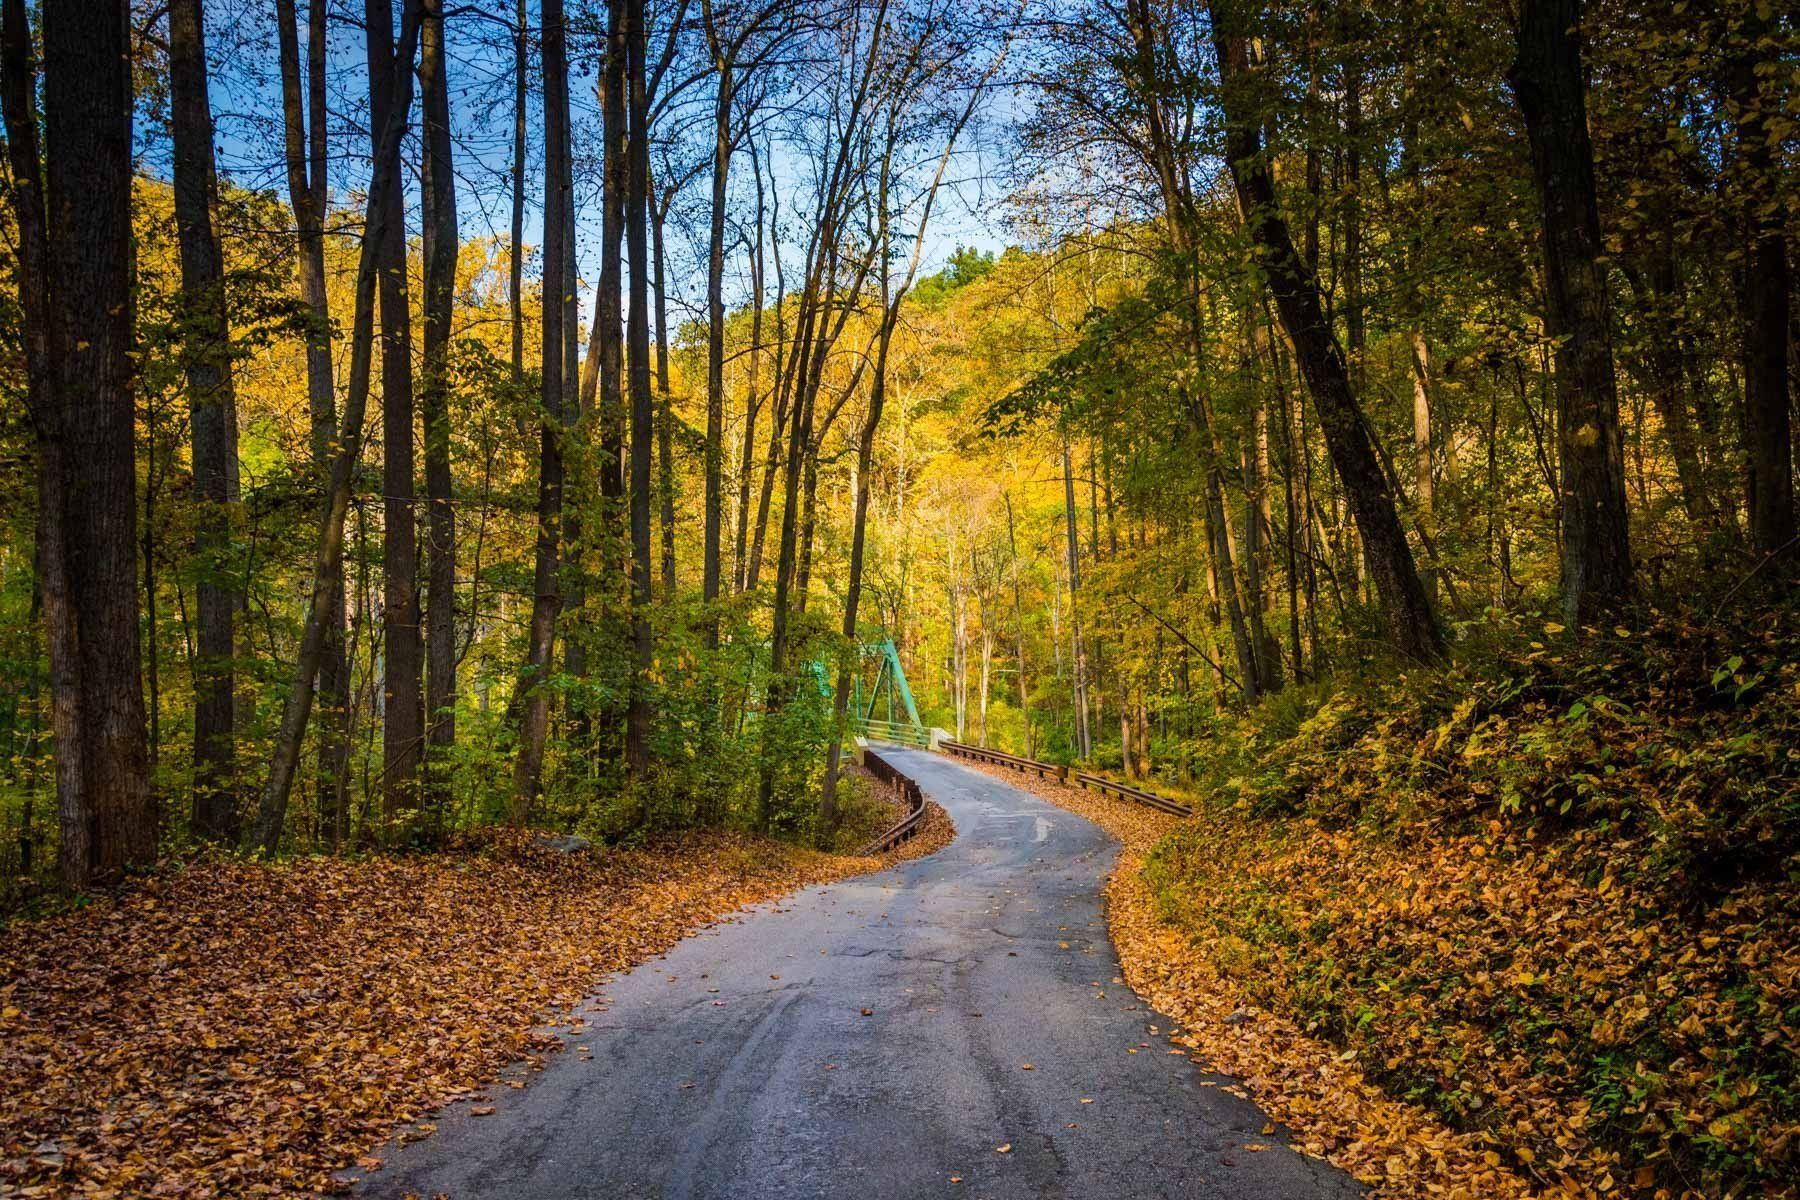 Autumn color and a country road in rural Baltimore County, Maryland ...